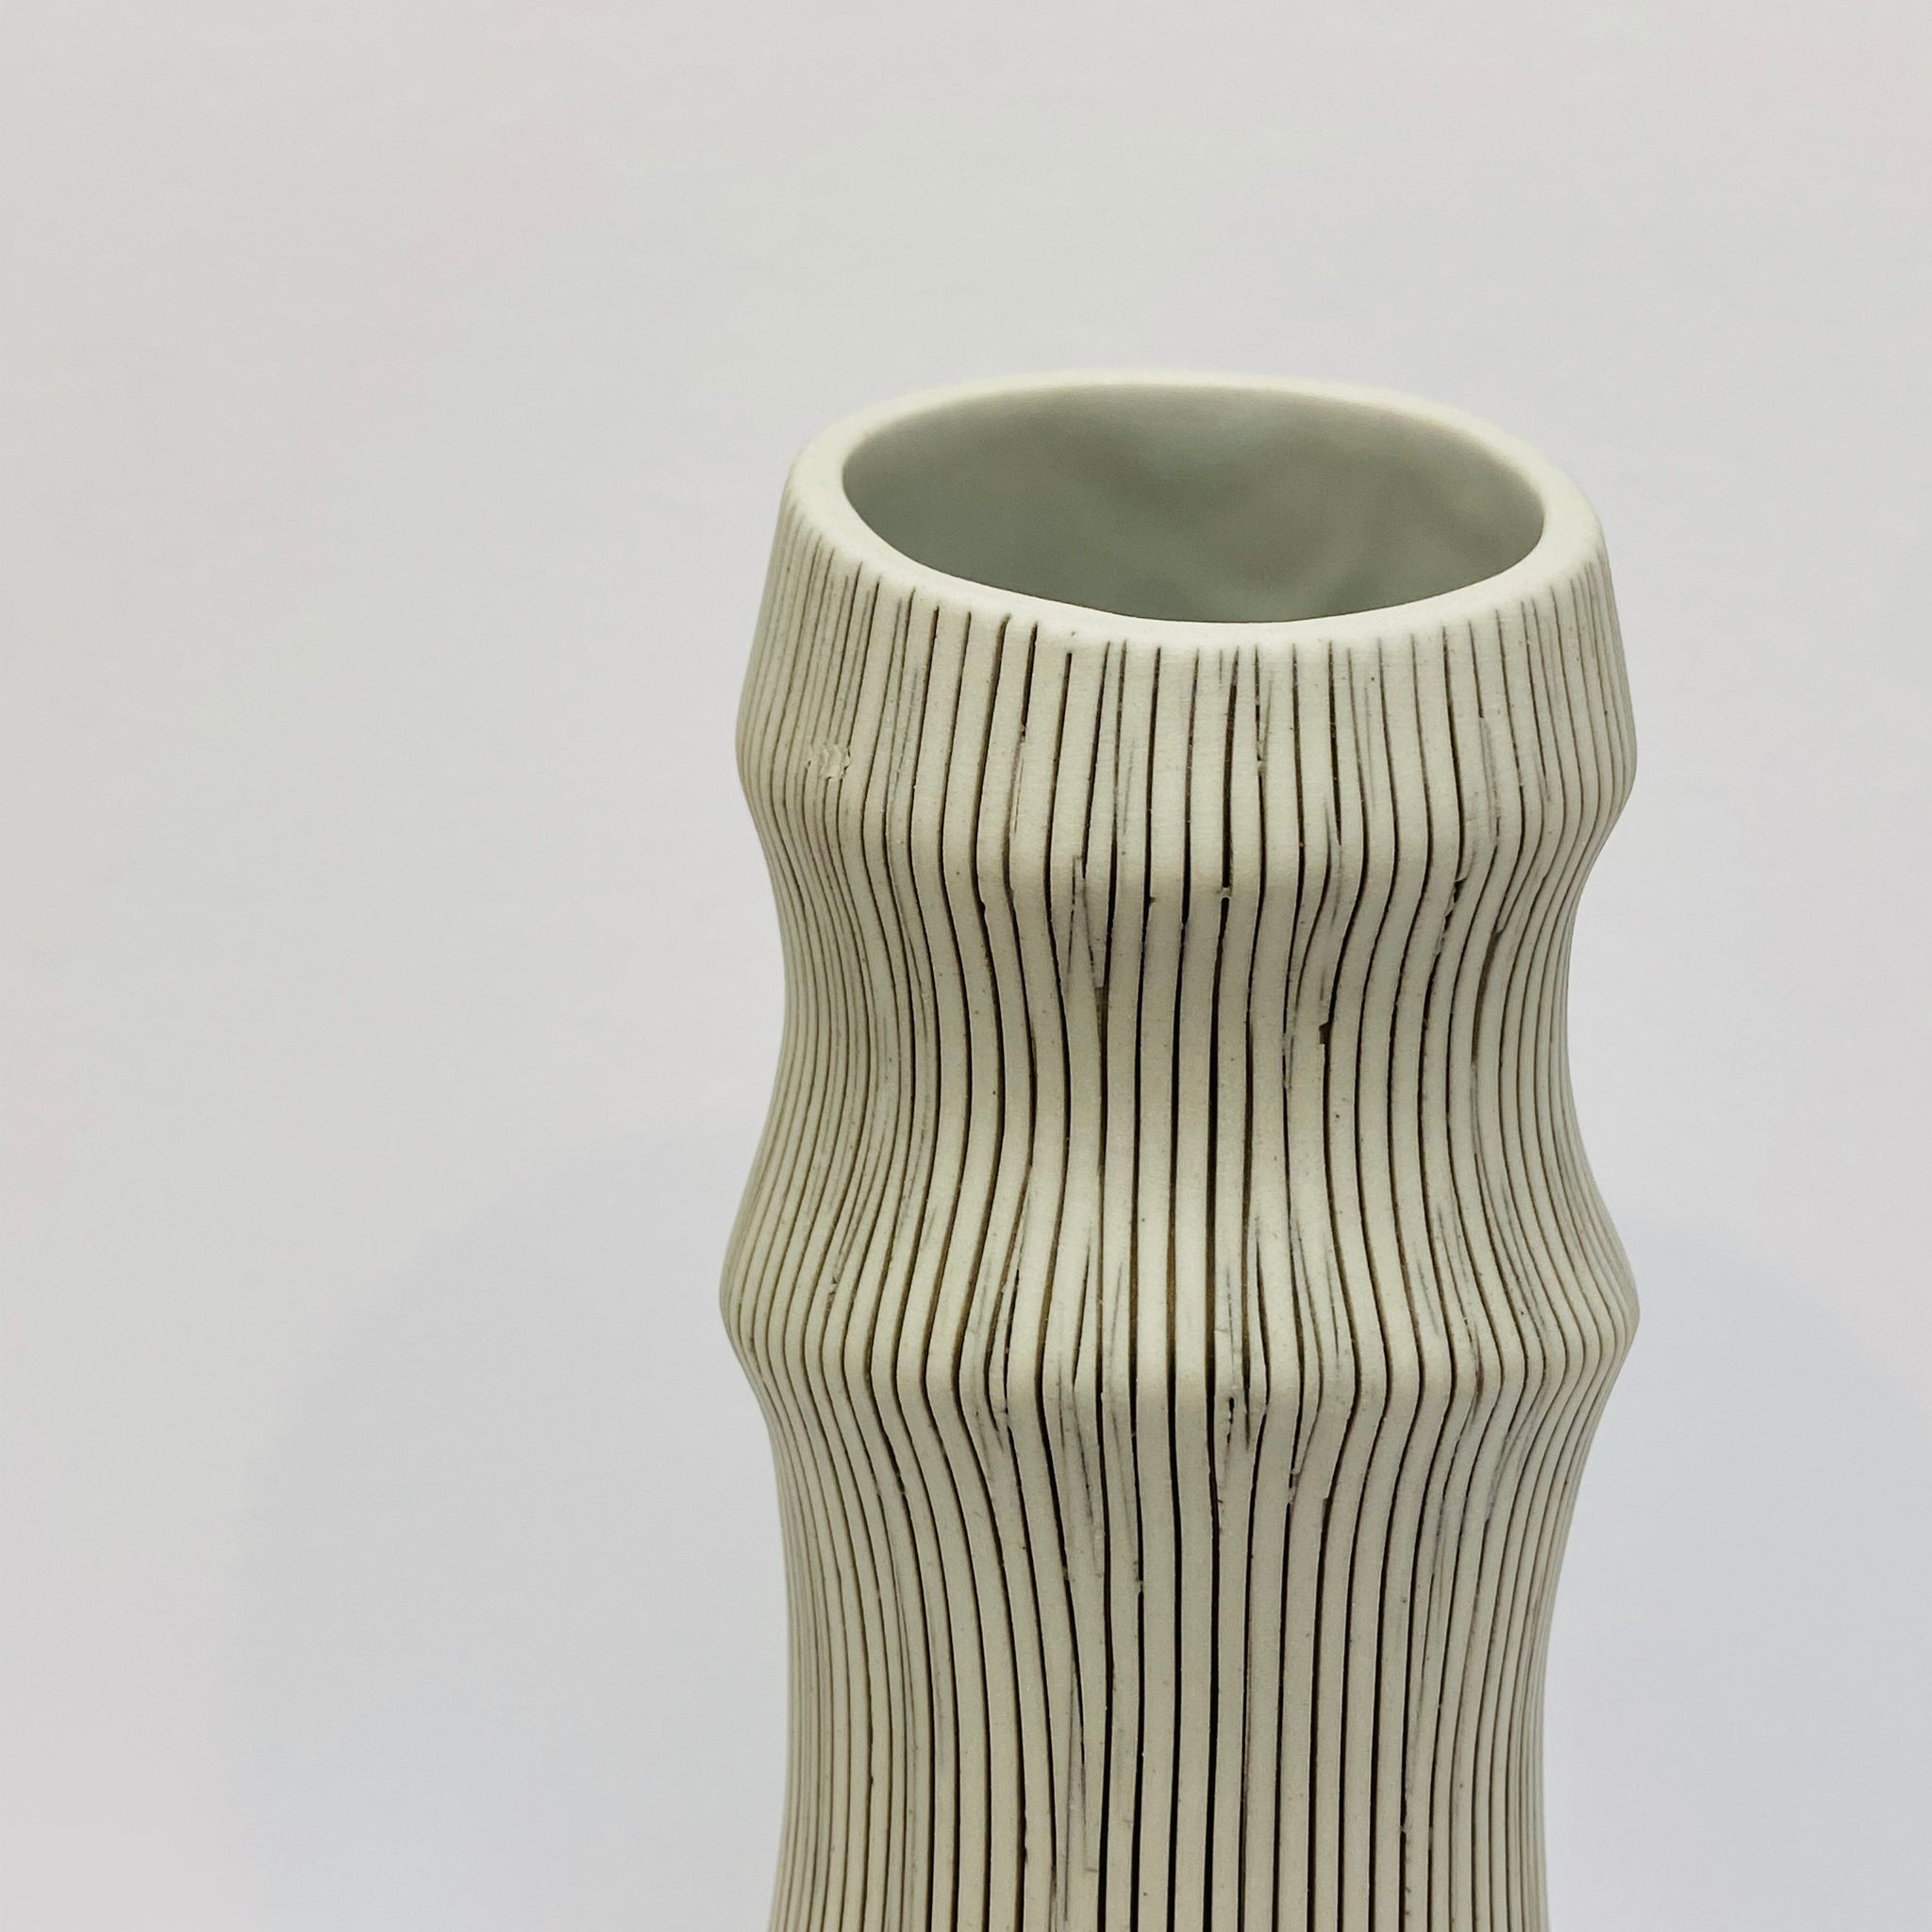 White and Black Bamboo Vase